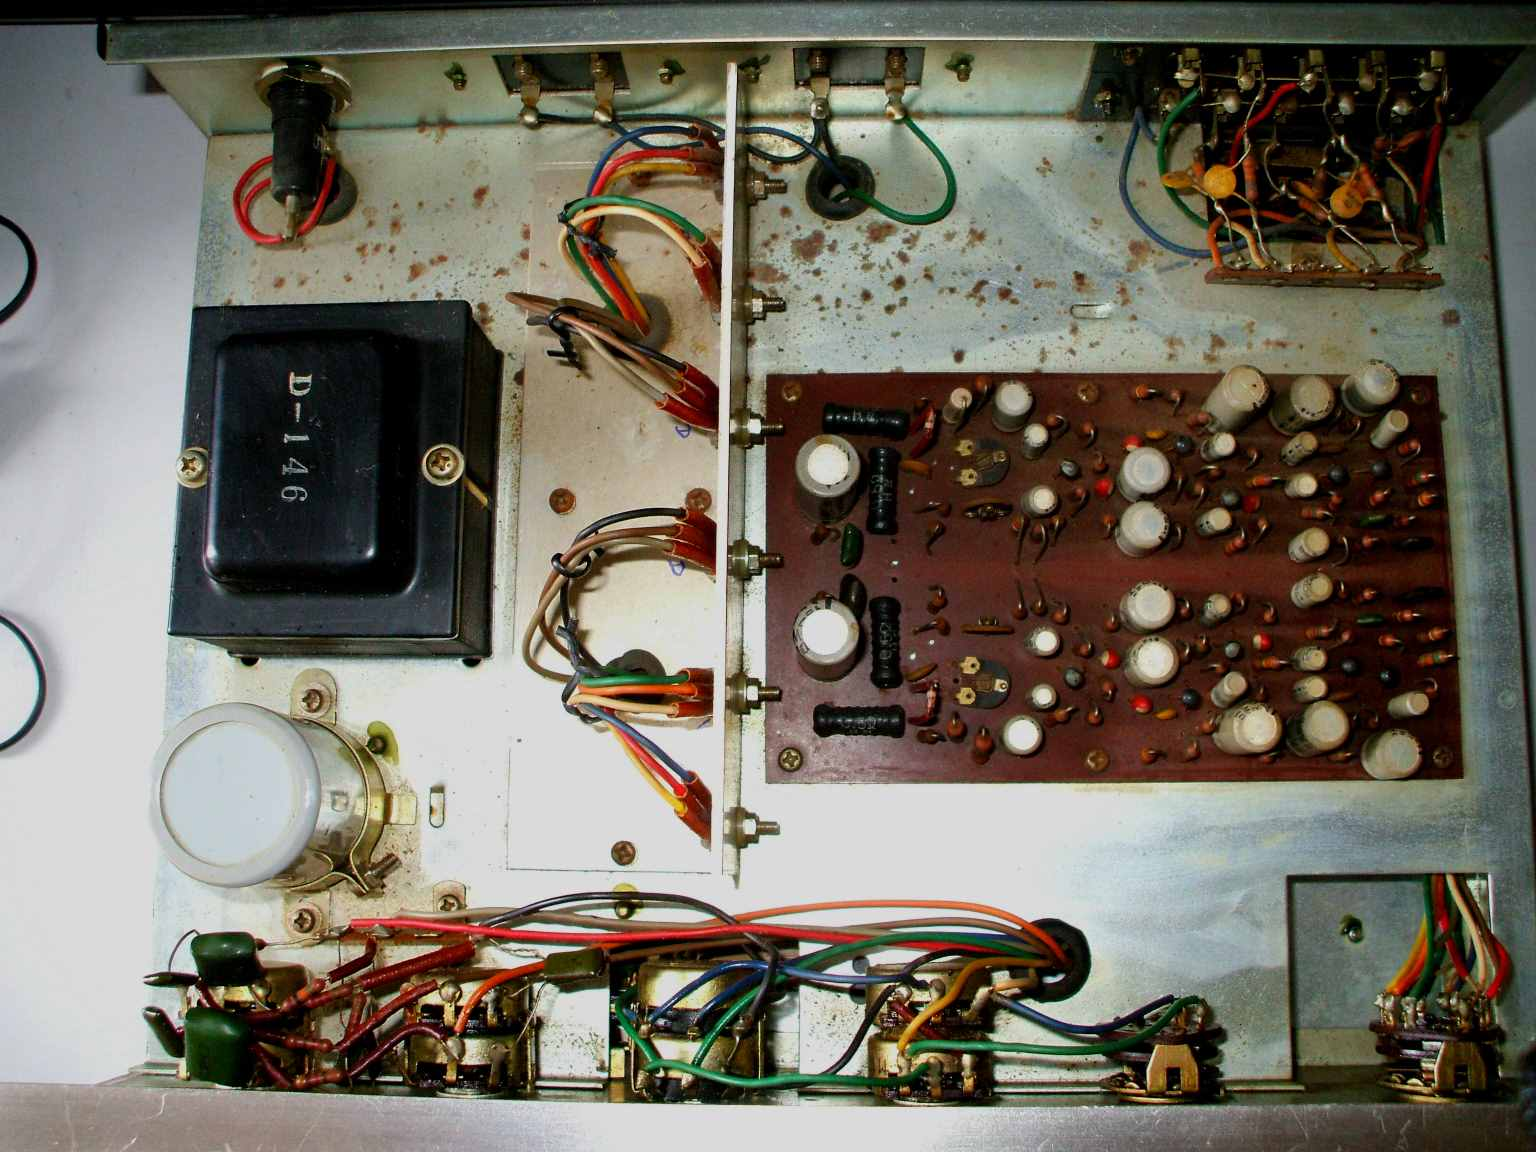 Luxman Audio Products Power Amplifier Otl For Cassette Radio Booster It Have Transistor Also A 5 Way Input Selector European Din Tape And Headphones Jack Is Added The Setup Of This Amp Quite Same As You Can See